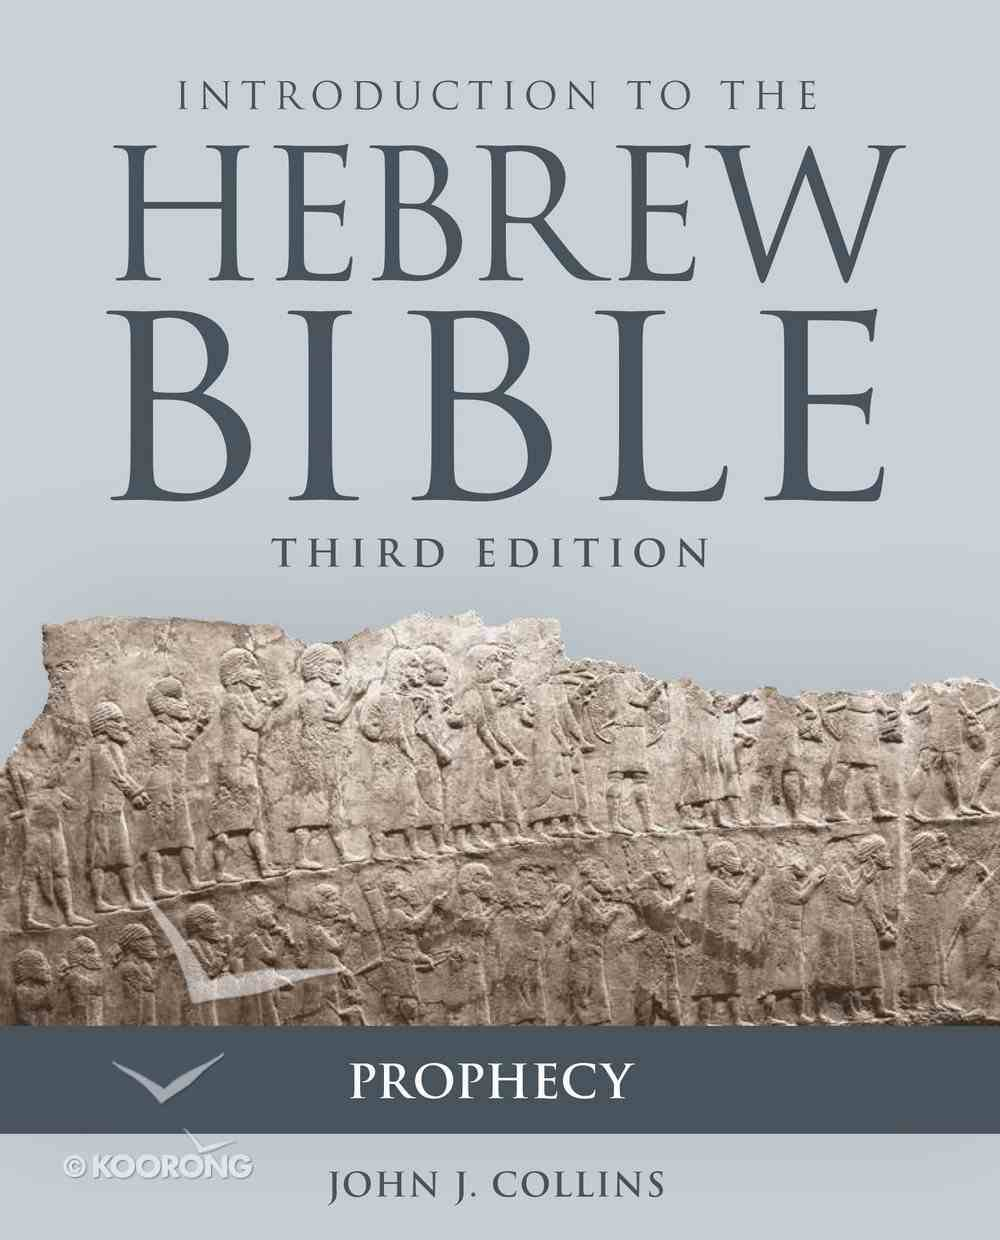 Introduction to the Hebrew Bible: Prophecy (Third Edition) Paperback